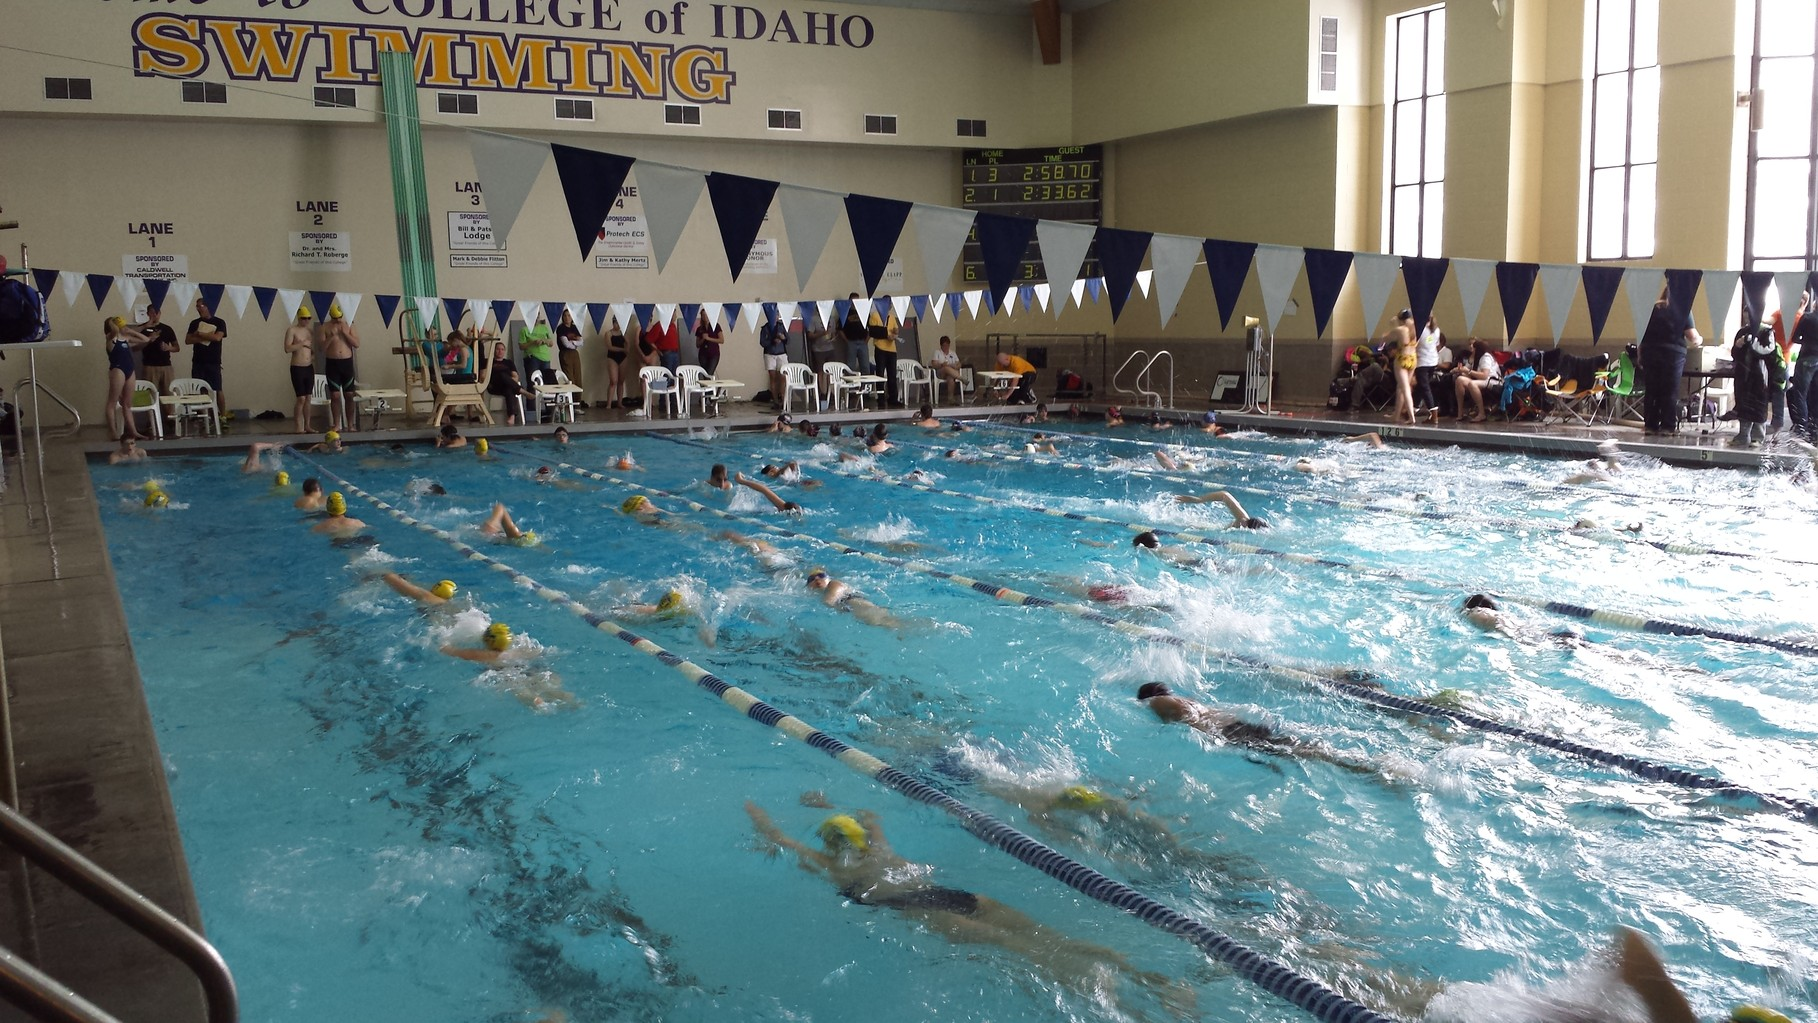 Warm ups at the swim meet at College of Idaho February 8-9.